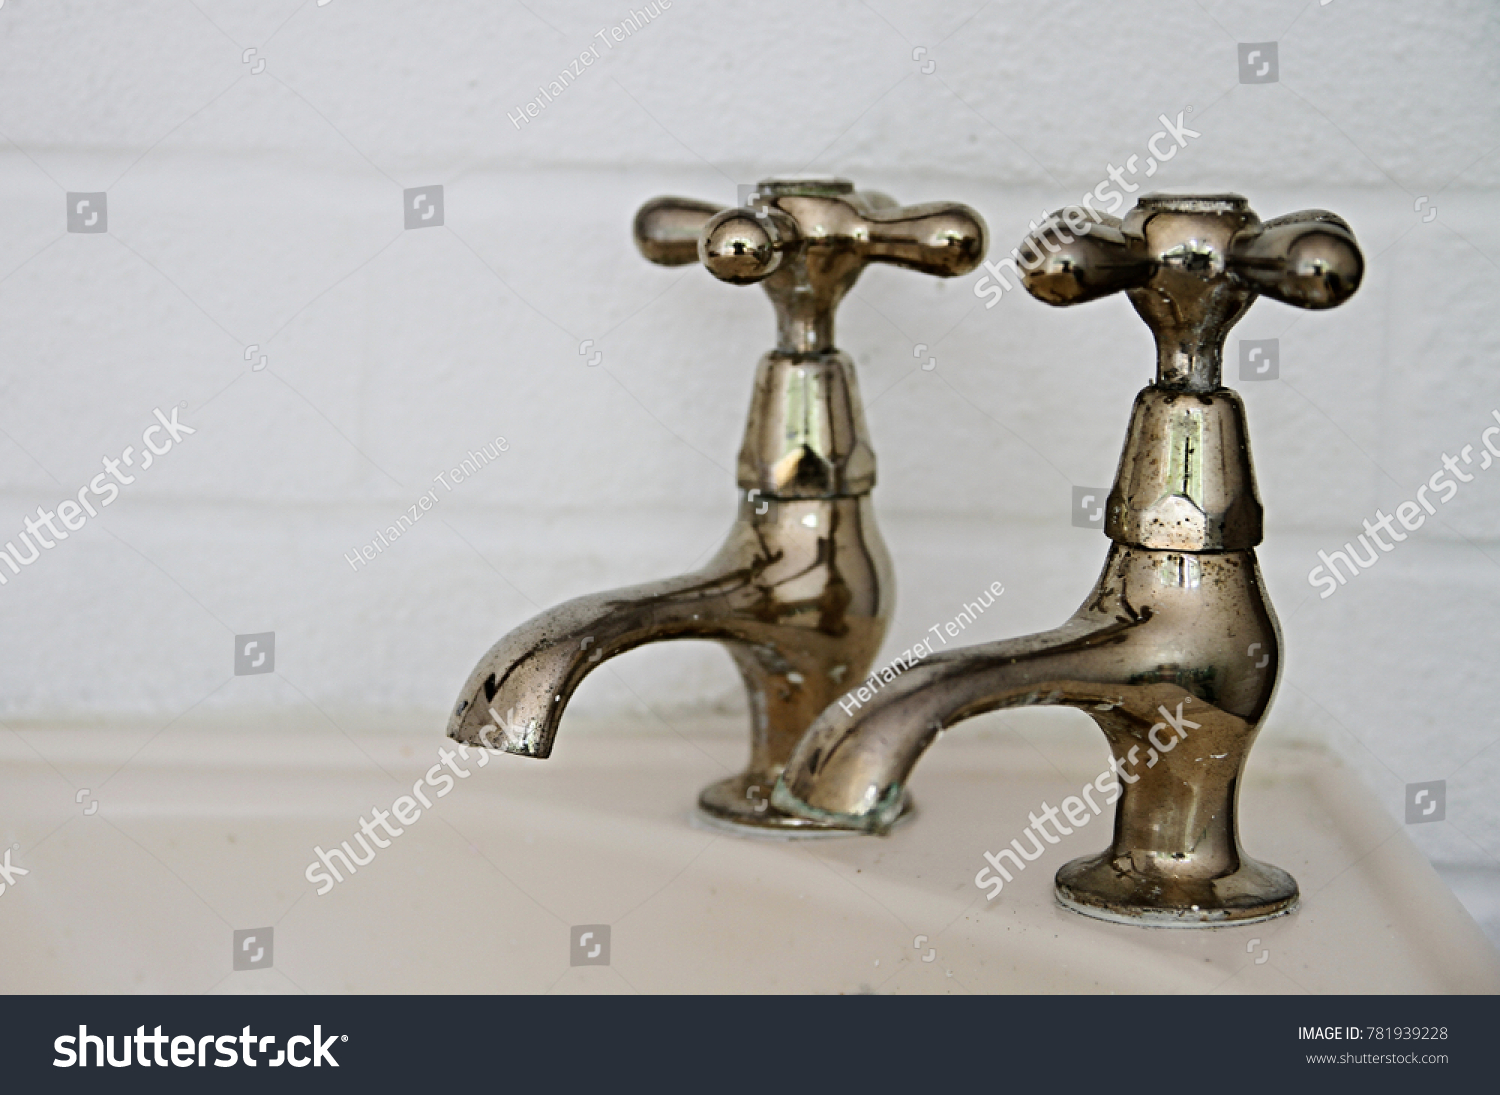 Luxury Old Taps Model - Bathroom and Shower Ideas - purosion.com